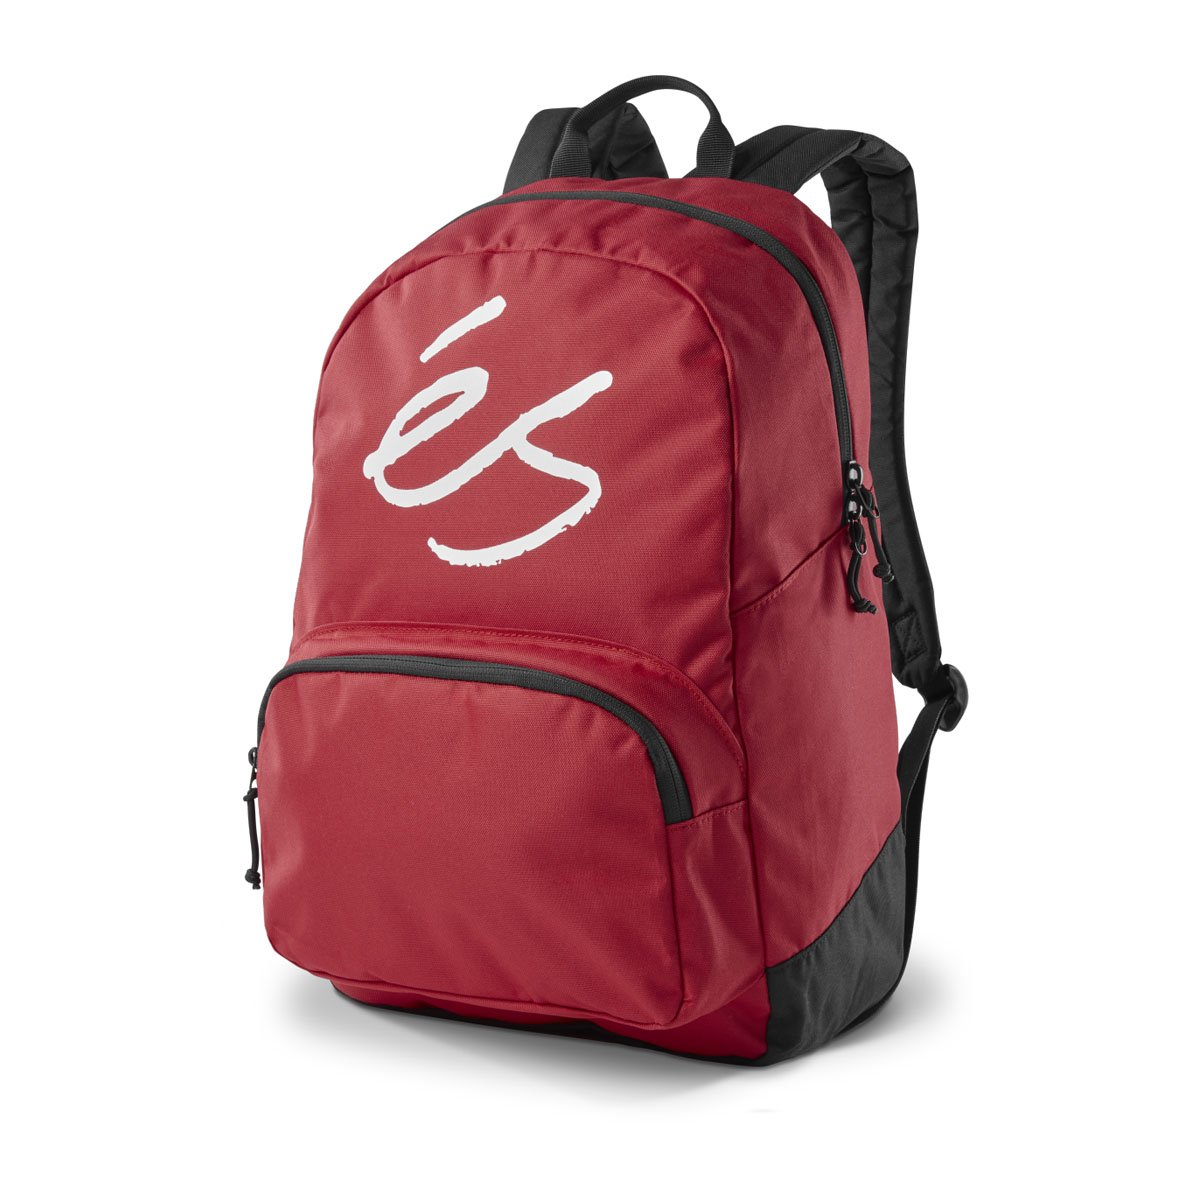 ES DOME BACKPACK